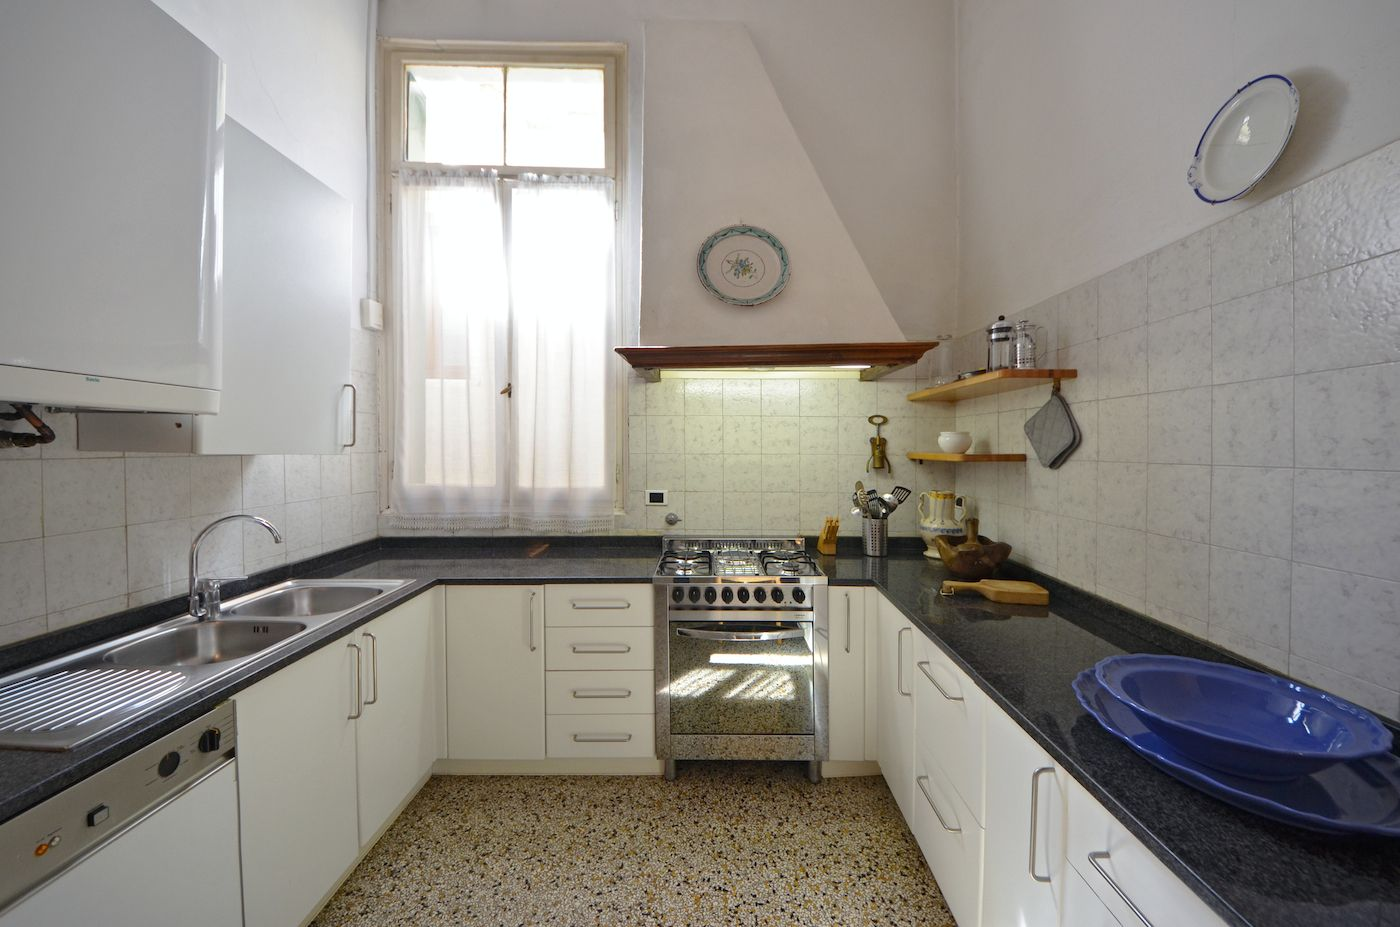 the kitchen is dated but fully functional and well equipped